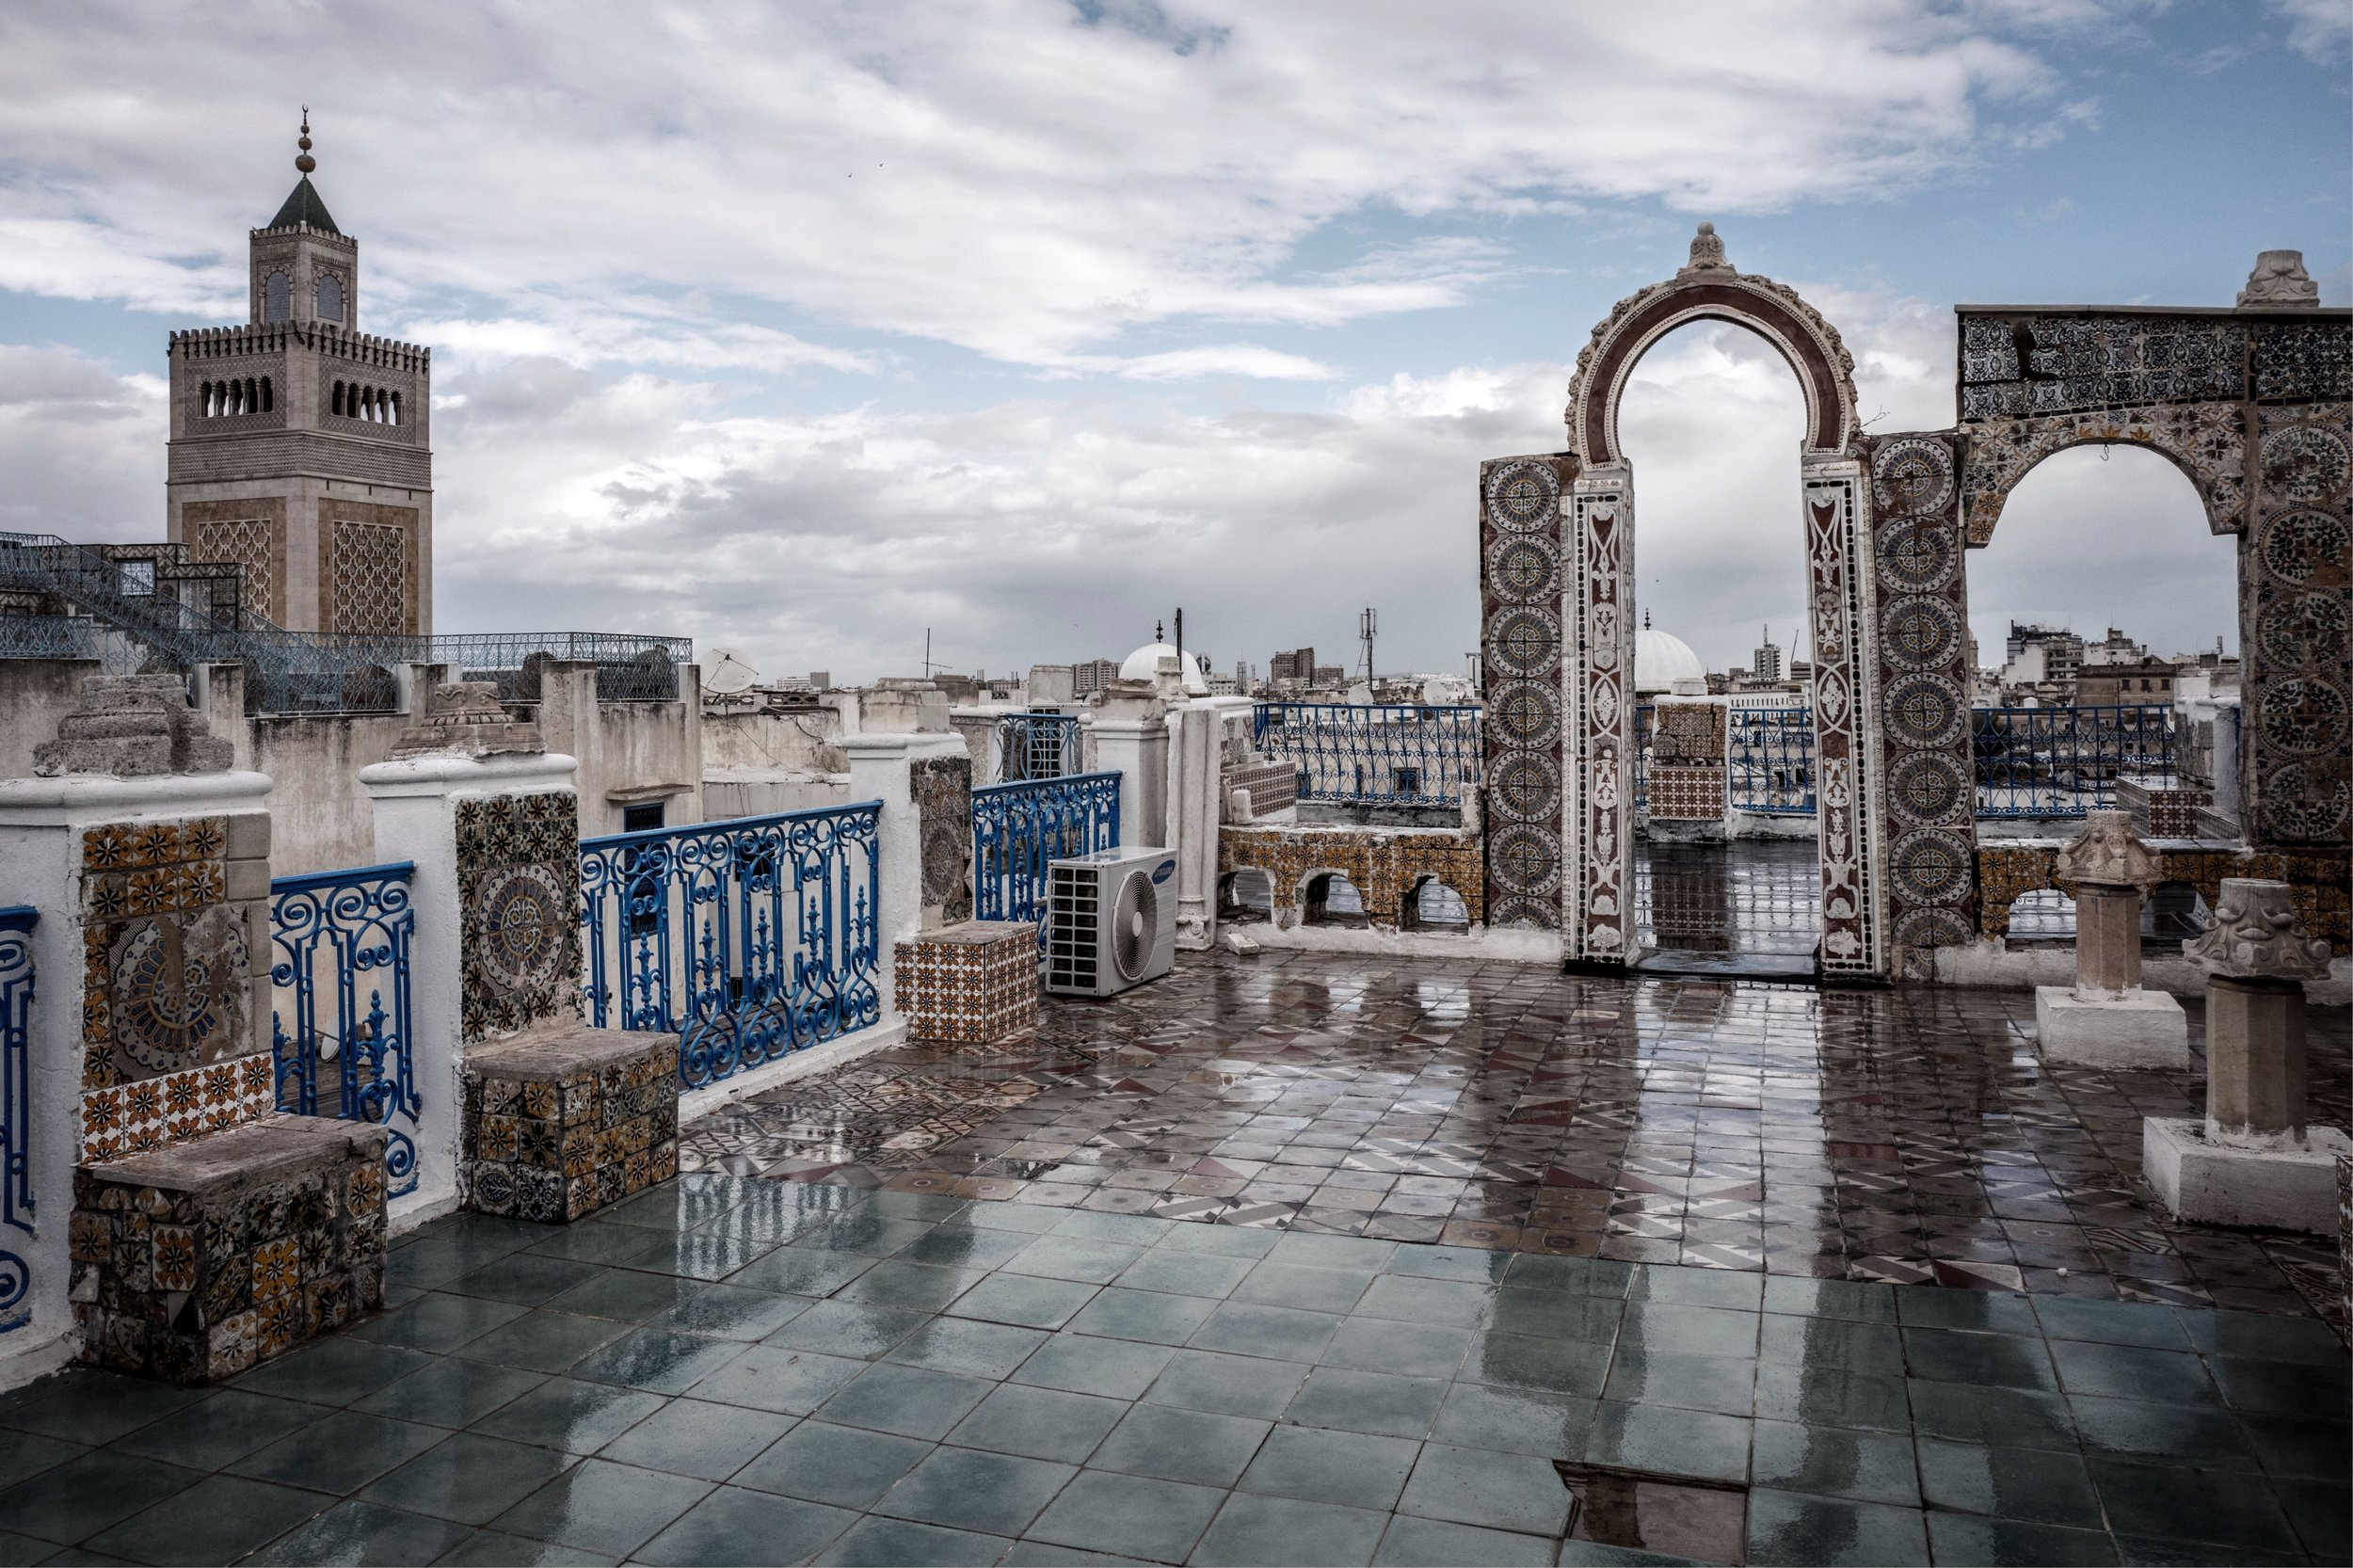 A rooftop view over the Medina de Tunis, dominated by the 1895 minaret of Zitouna Mosque, while the mosque itself dates from the 8th century.